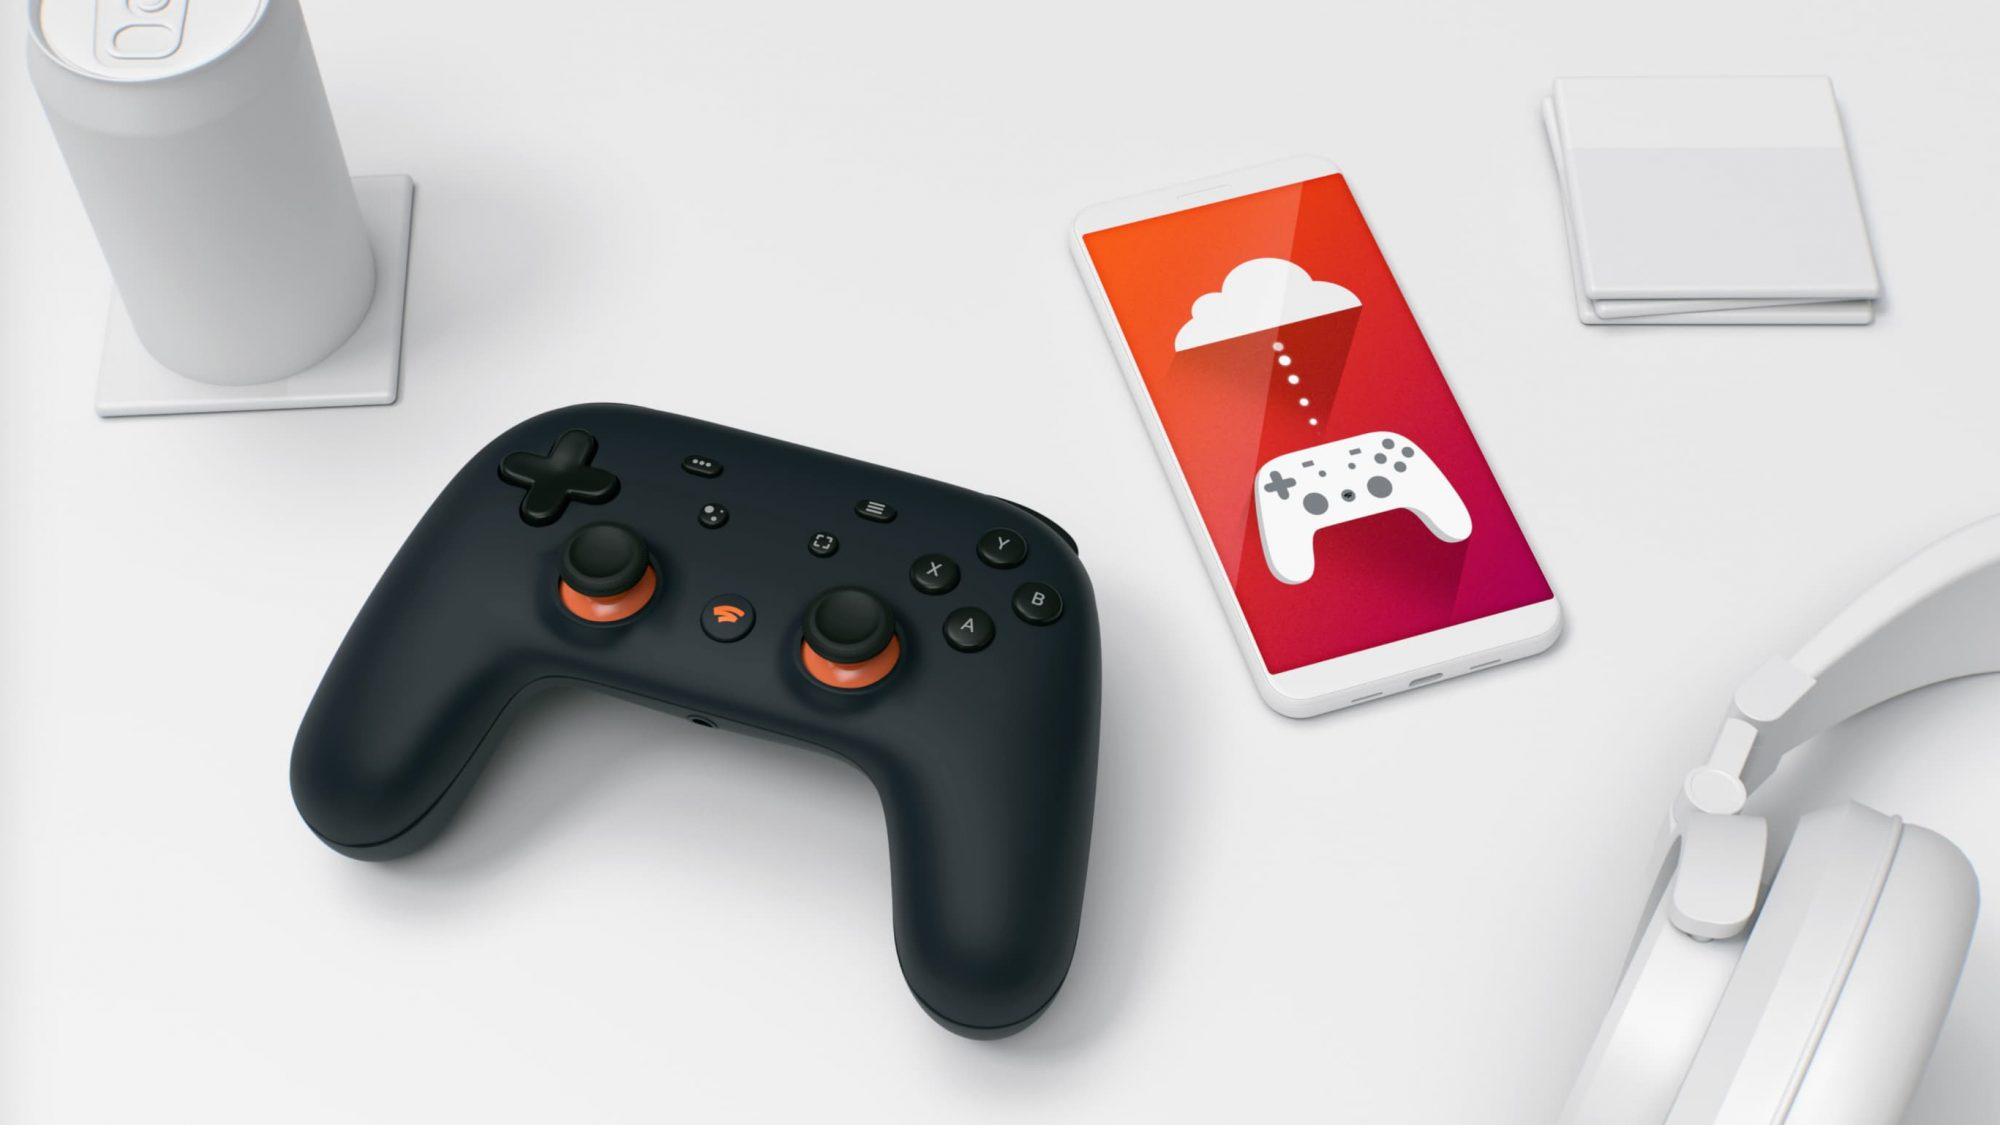 Stadia now officially supports playing over a mobile data connection